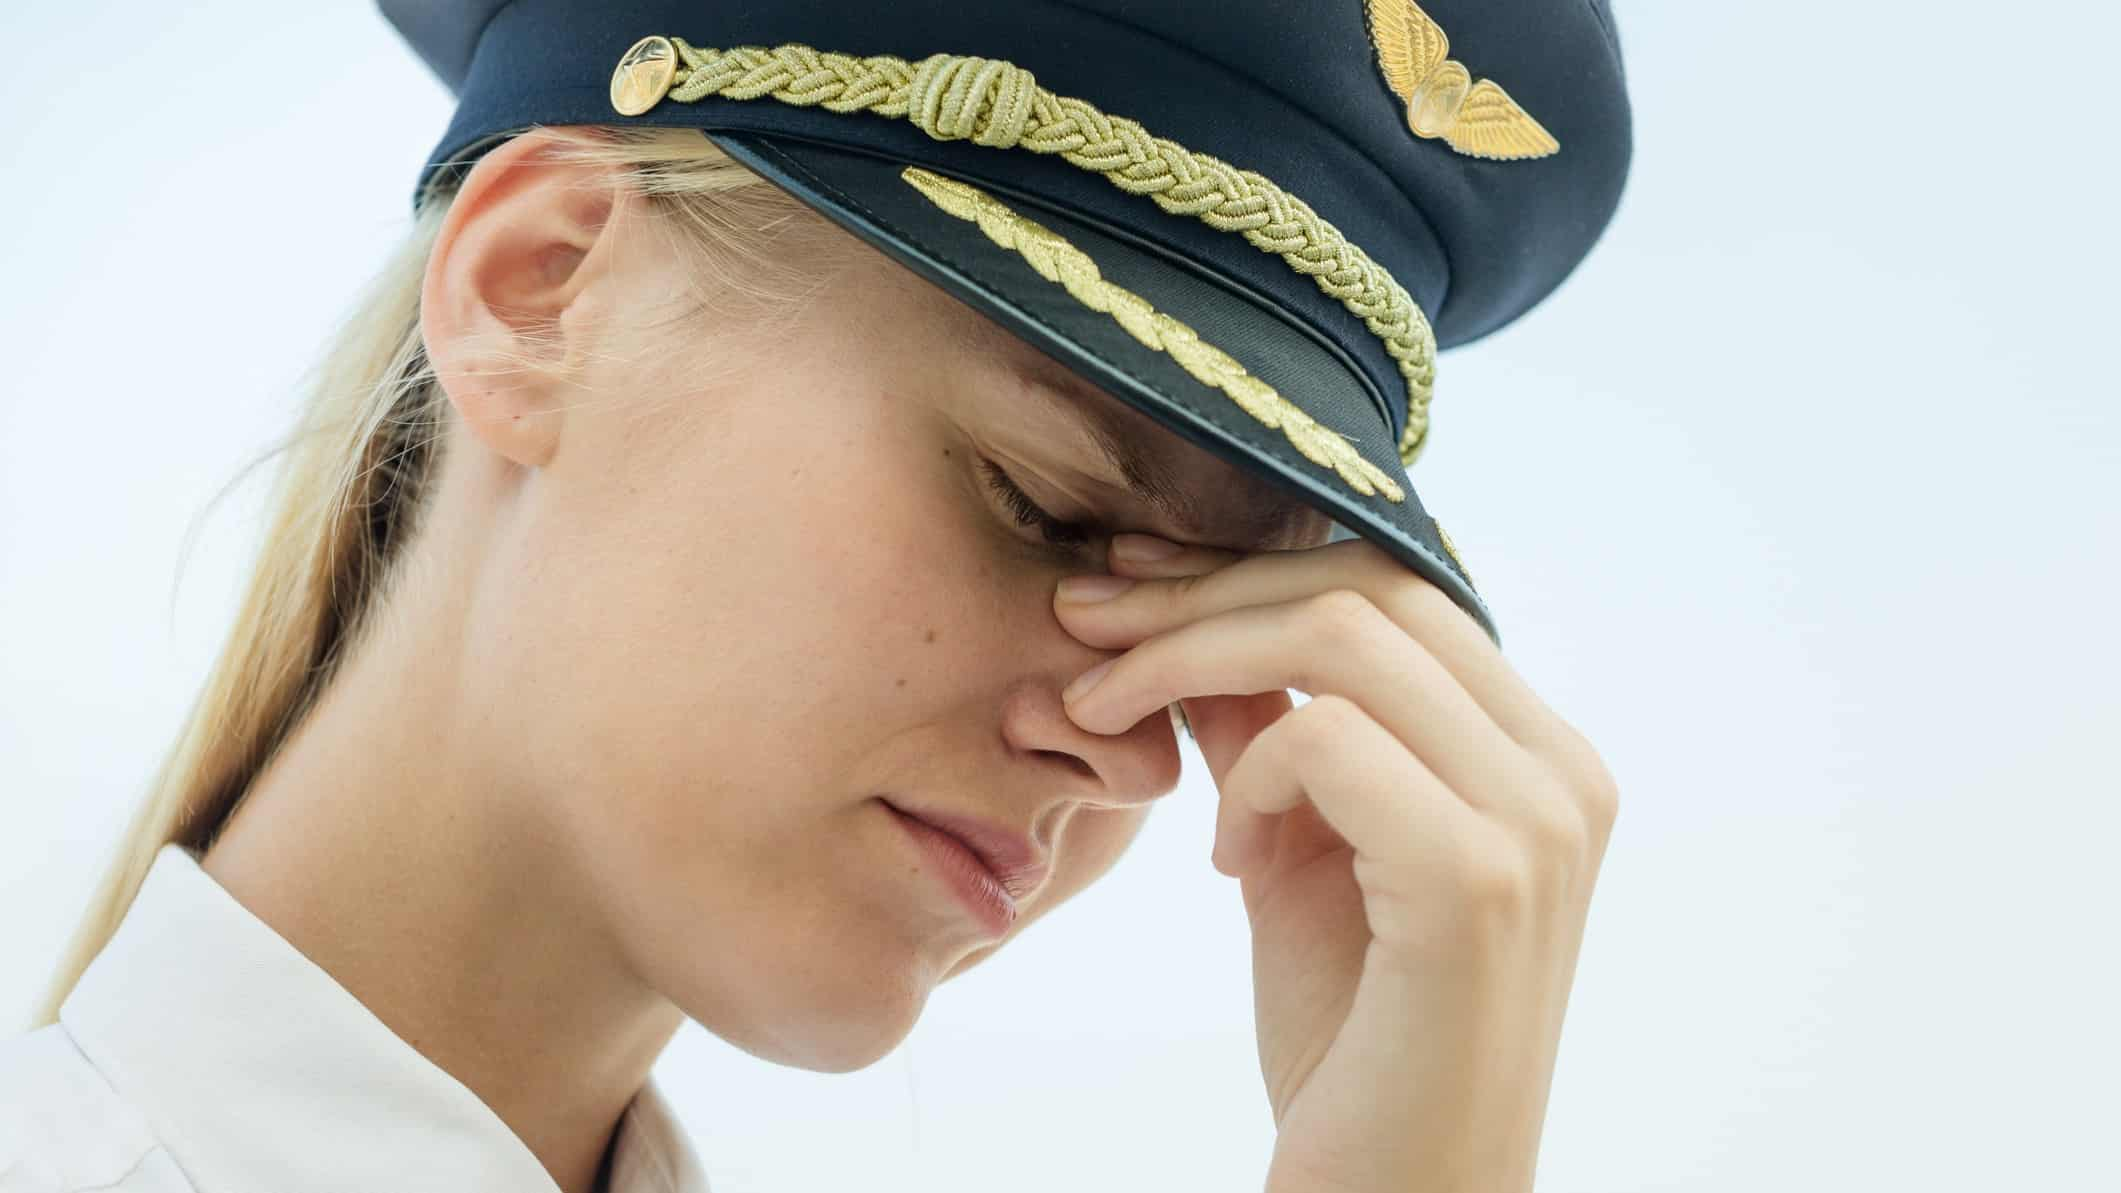 qantas pilot putting hands to her face as if distraught